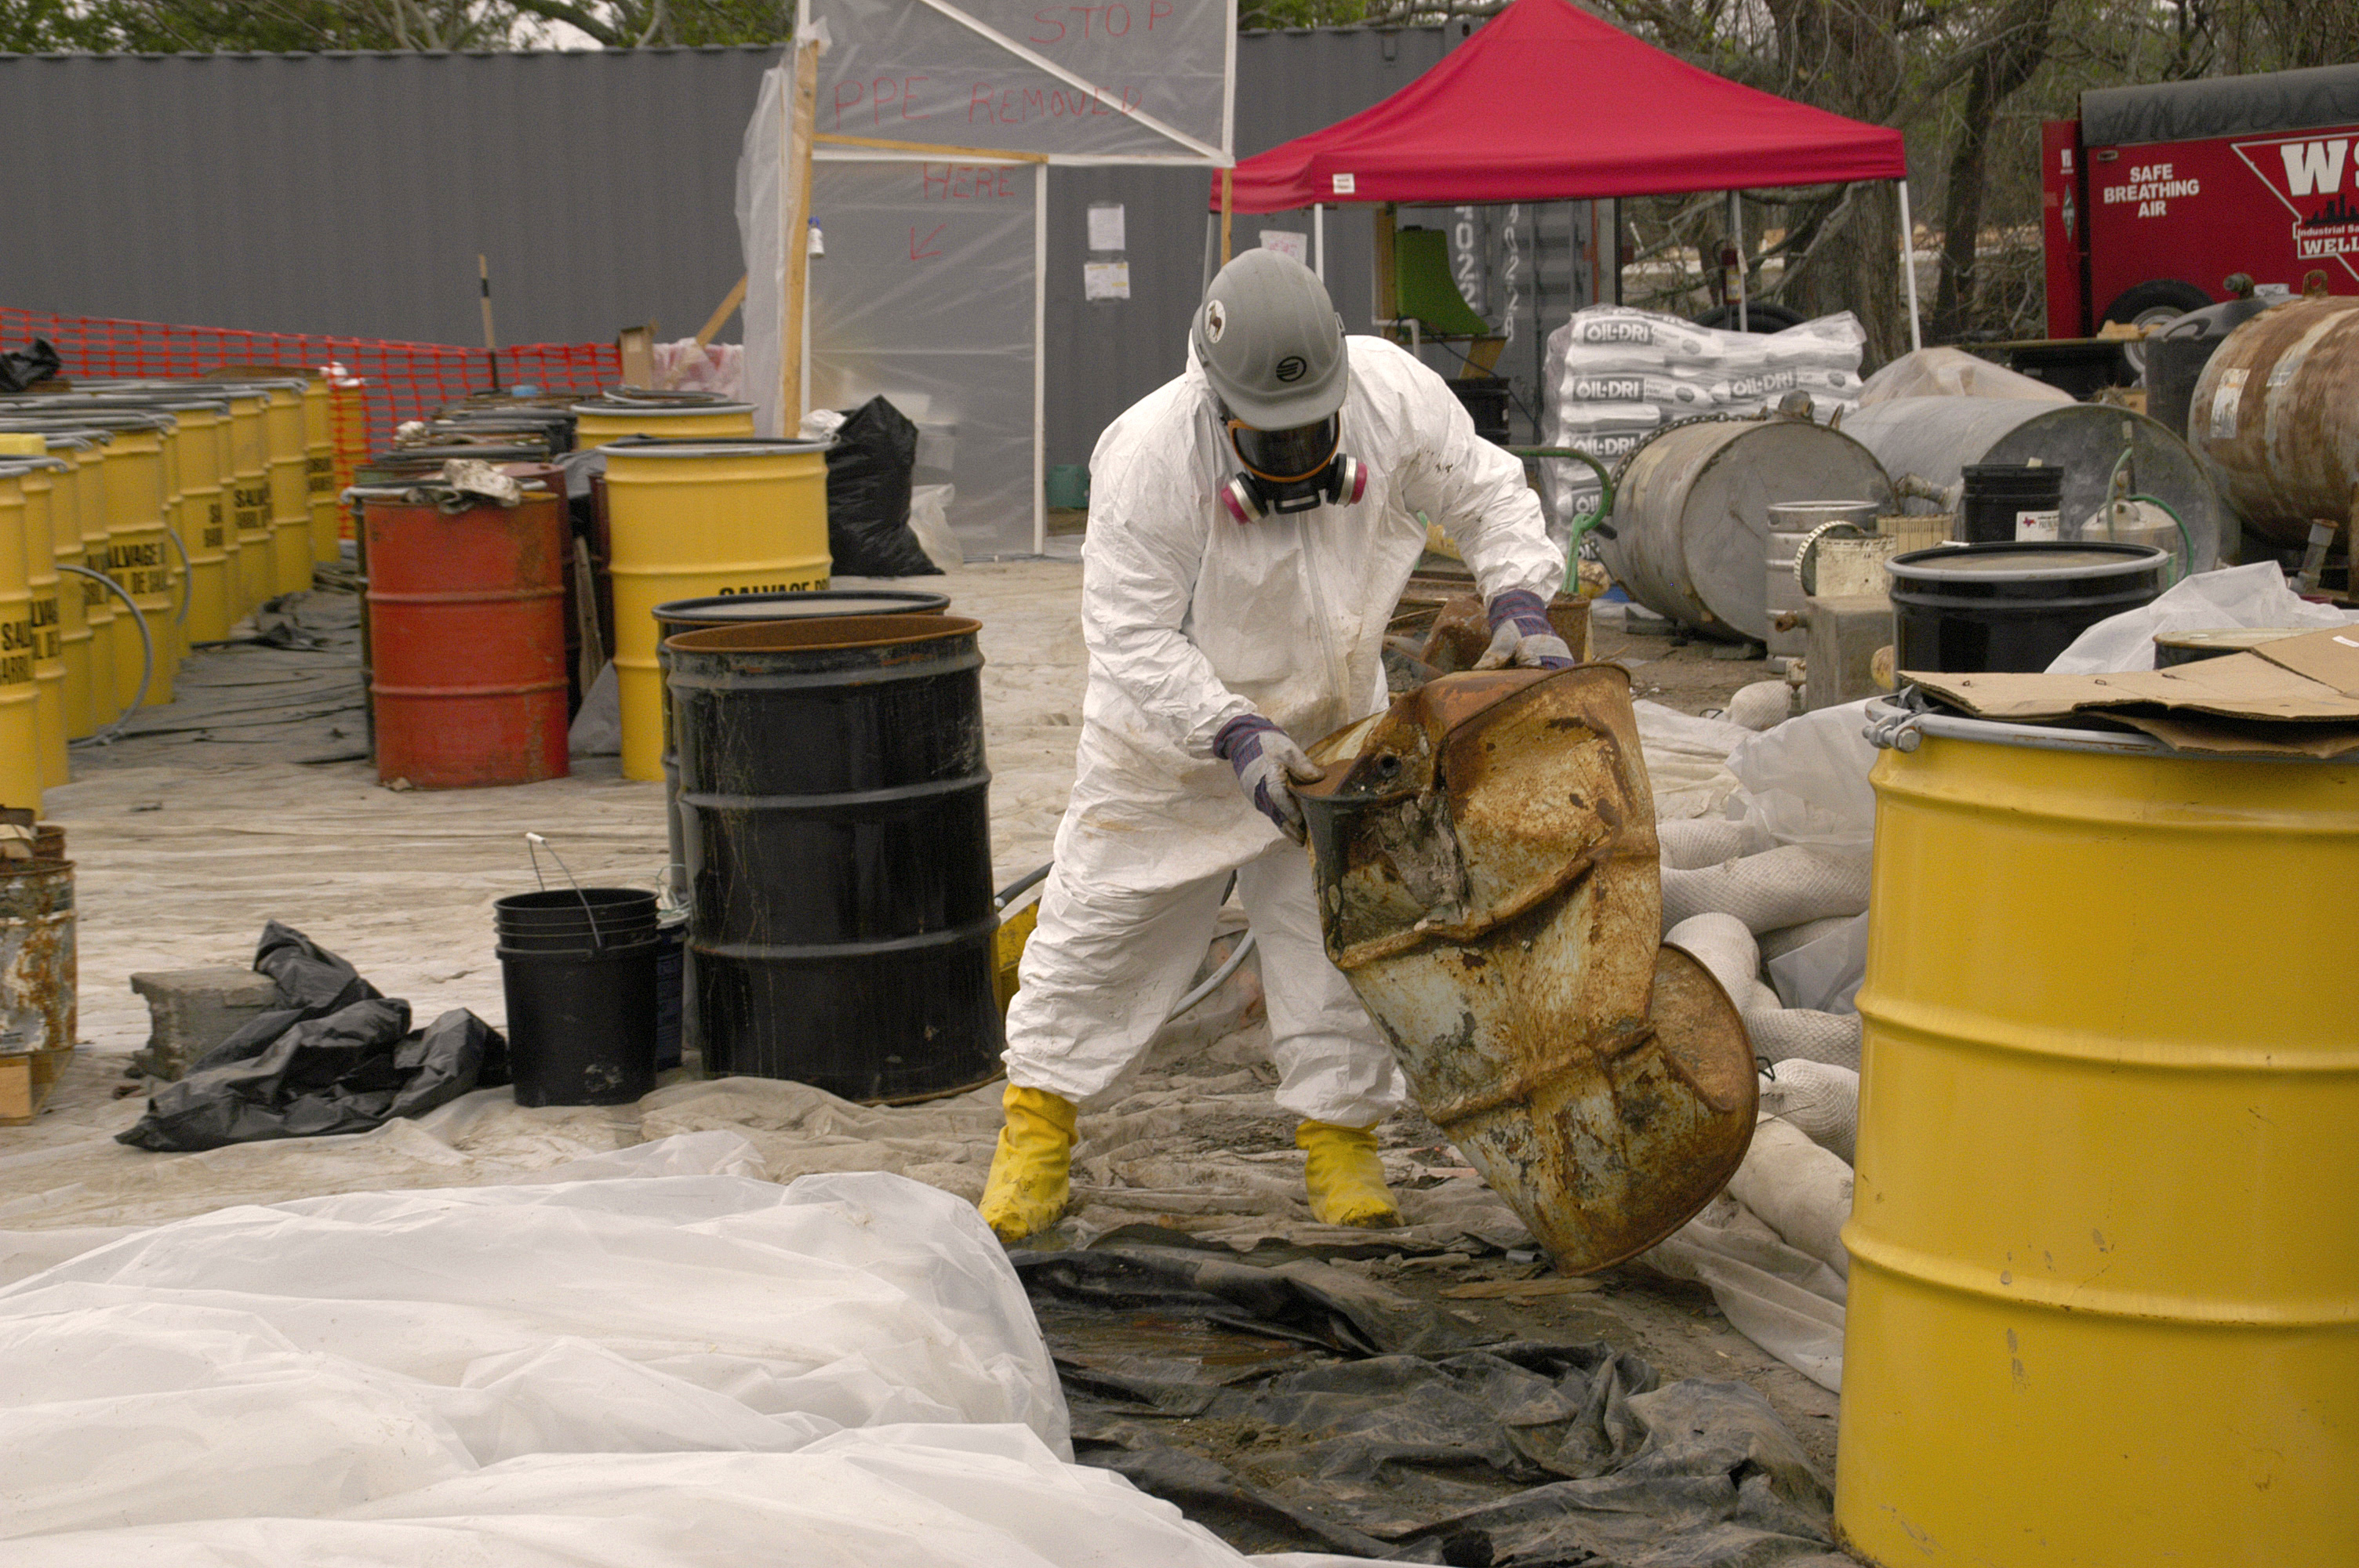 A worker in hazmat suit checks a potentially hazardous barrel to determine its contents